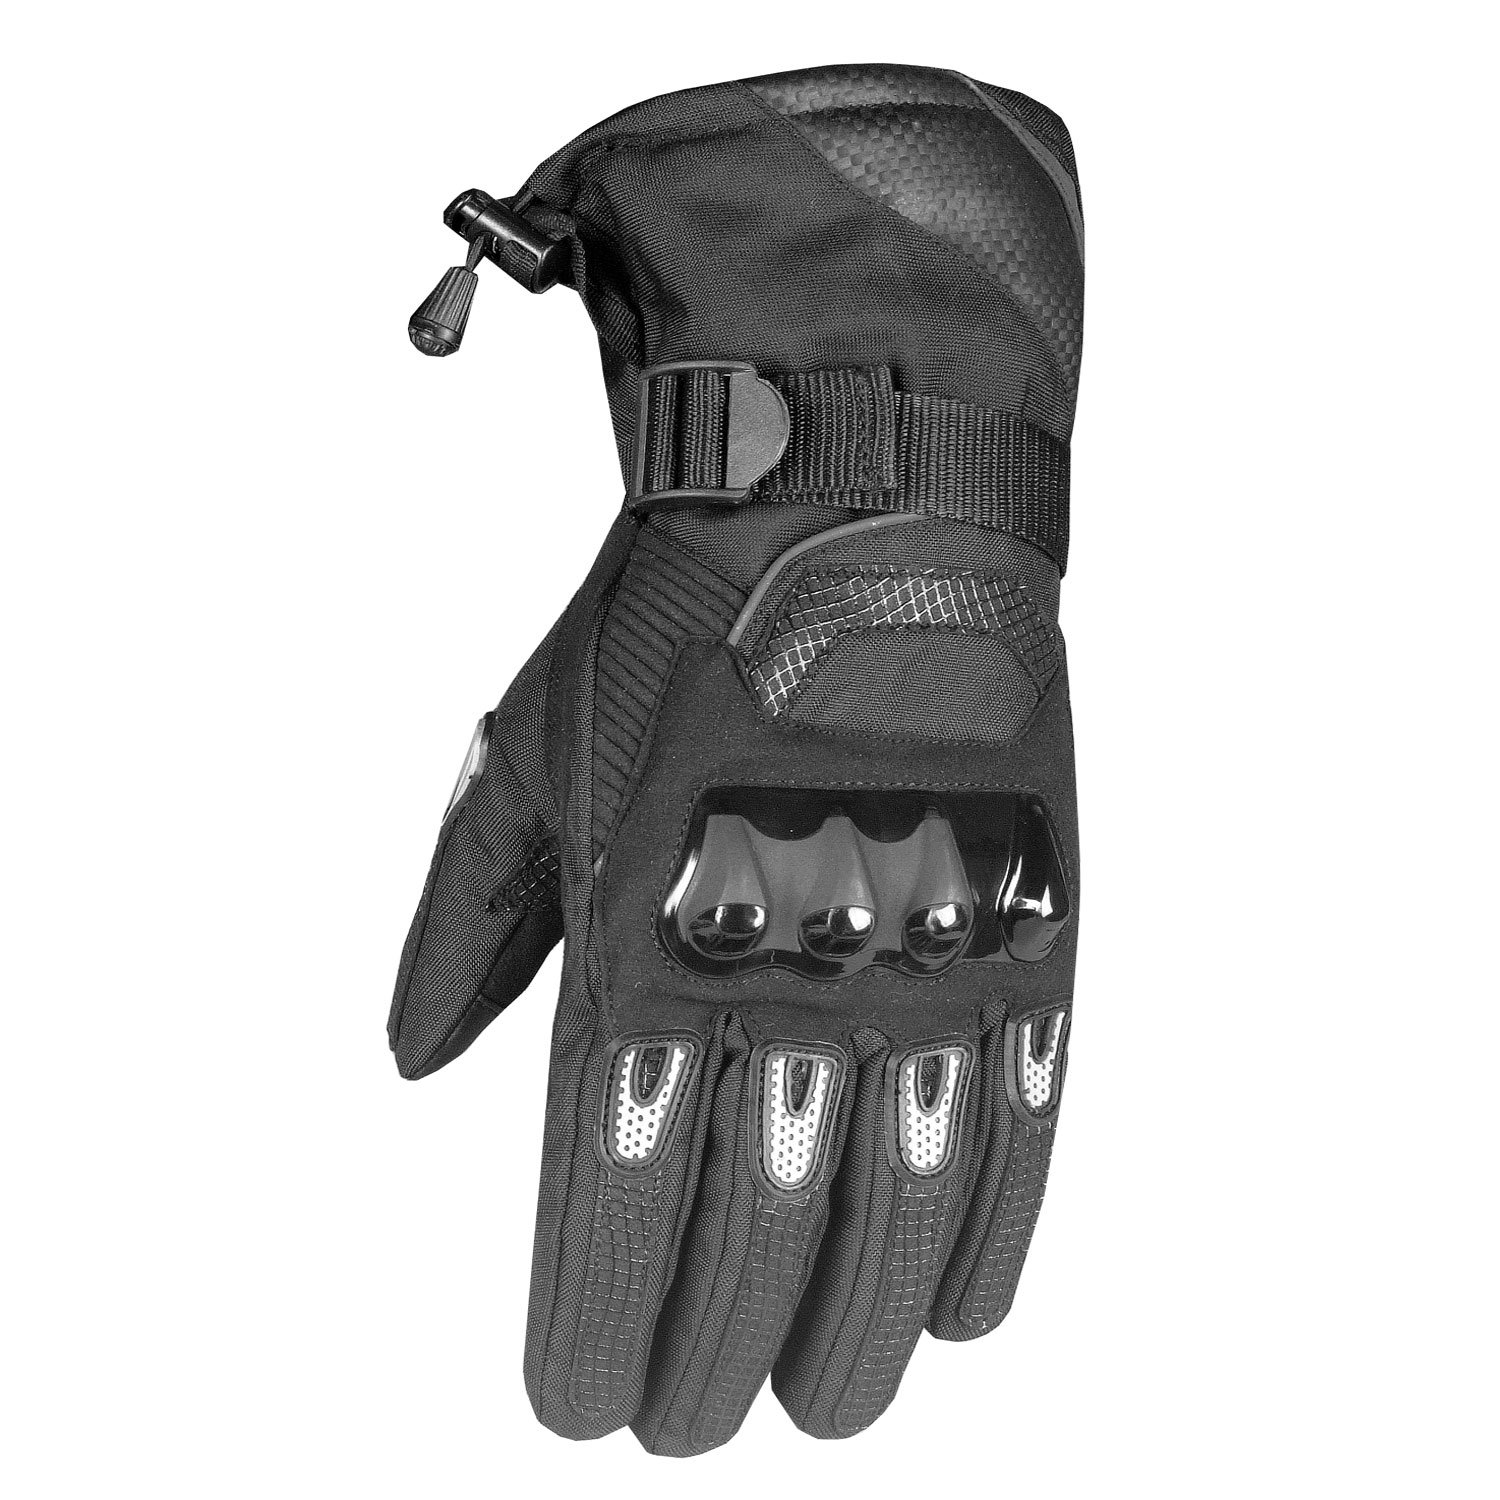 Glaze Men's Motorcycle Thinsulate Winter Waterproof Biker Windproof Gloves XL